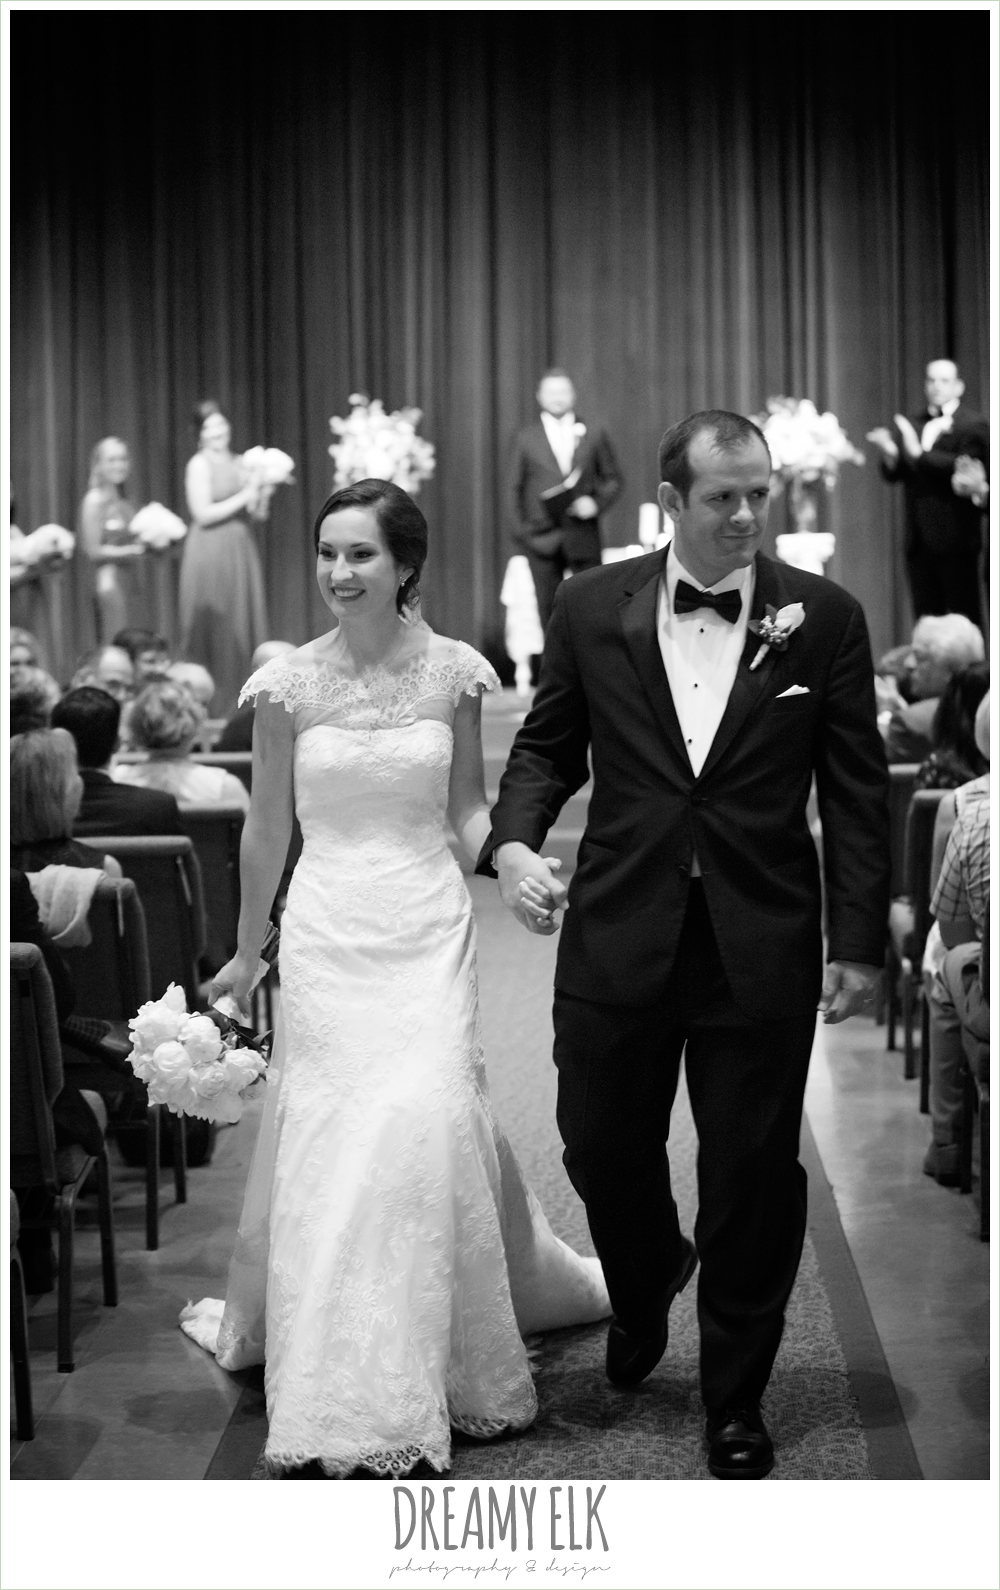 groom, classic tuxedo, white boutonniere, bride, lace wedding dress with lace sleeves, lace trimmed veil, bride and groom walking down aisle, indoor wedding ceremony, silver sequin wedding, fourth of july wedding photo {dreamy elk photography and design}f